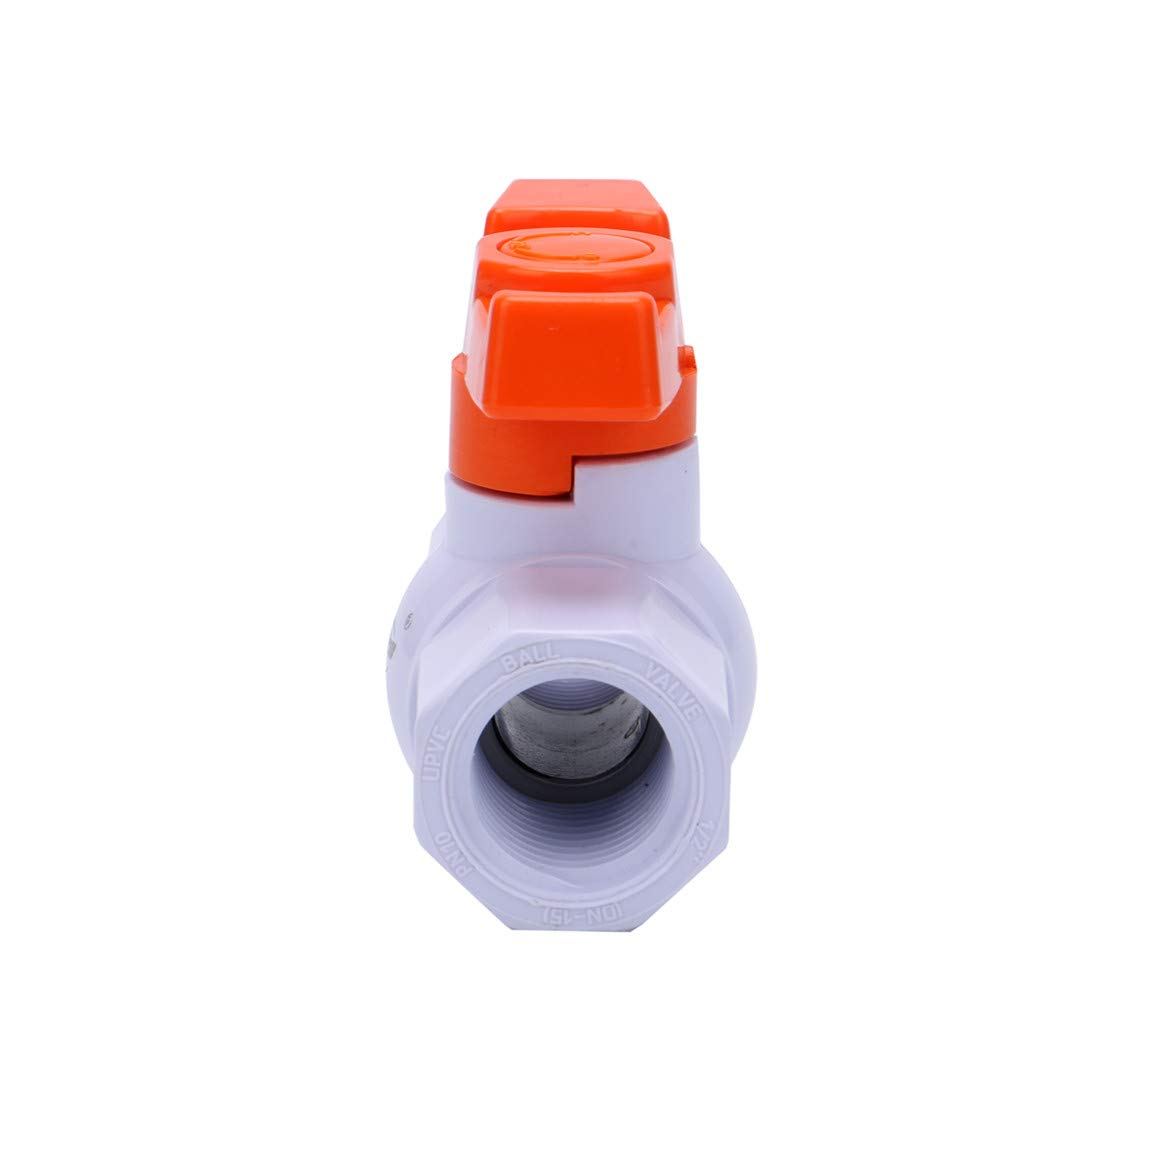 Female Thread x Female Thread Compact T-Handle Shut-Off Valves for Irrigation and Water Treatment SHYOKO 1//2 Valves Inline PVC Ball Valve